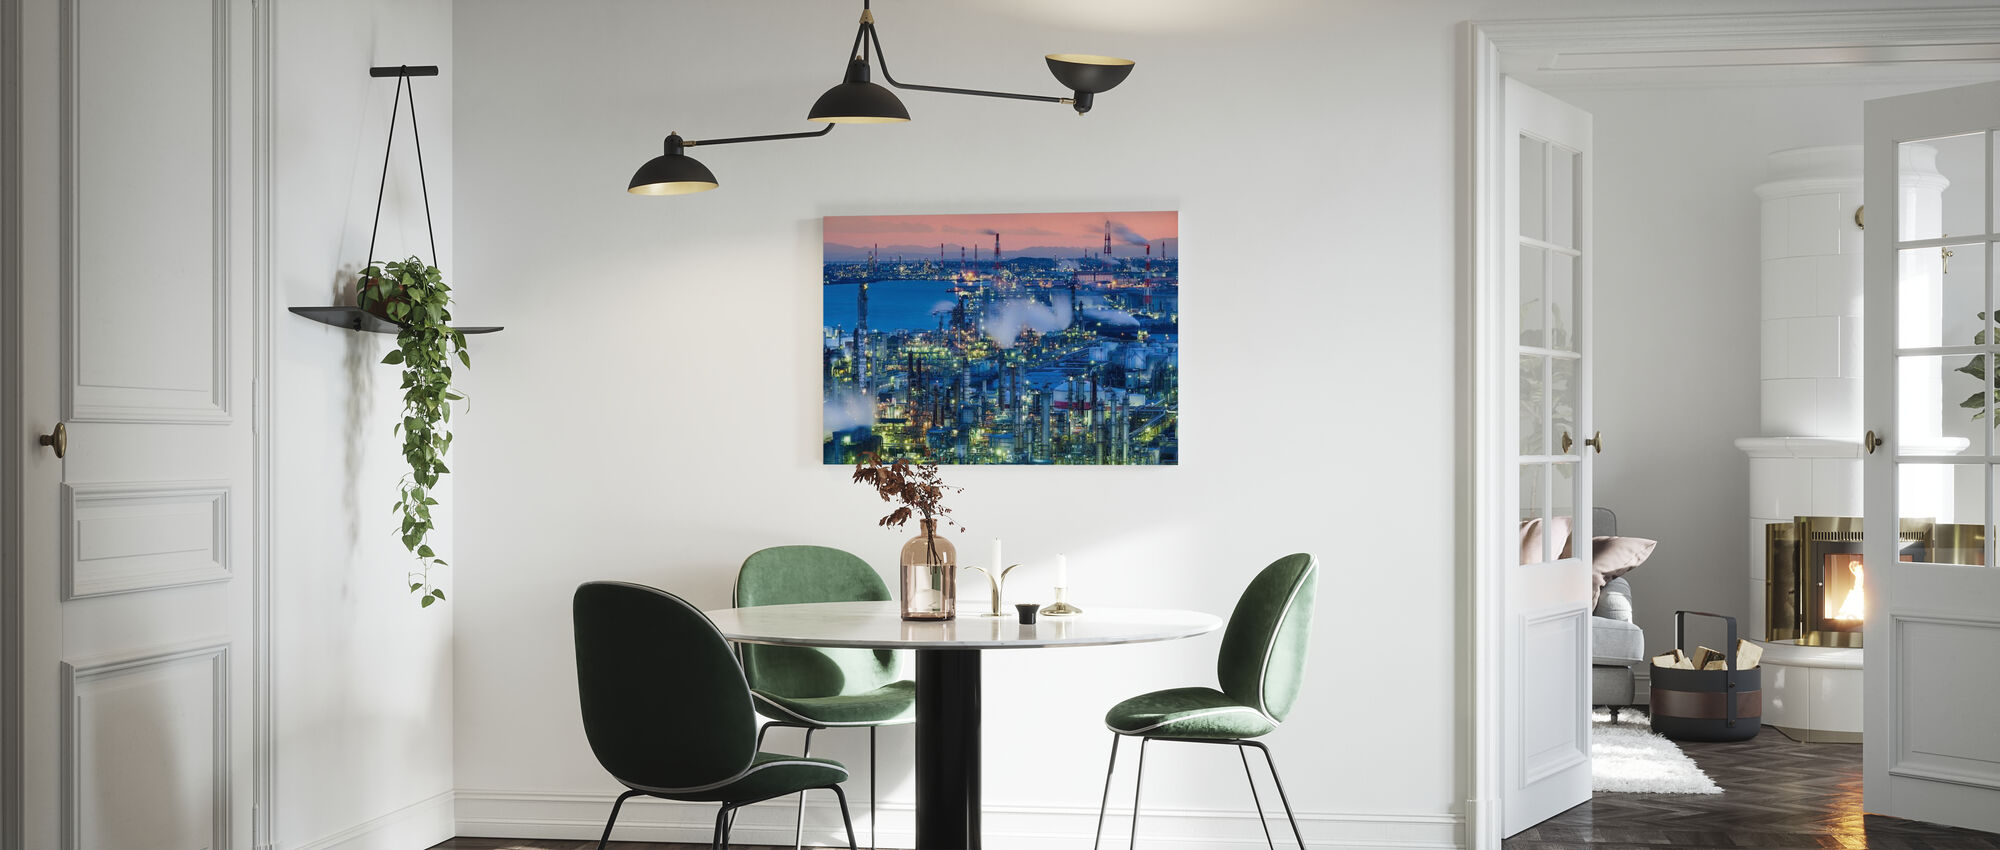 Factory Night View - Canvas print - Kitchen